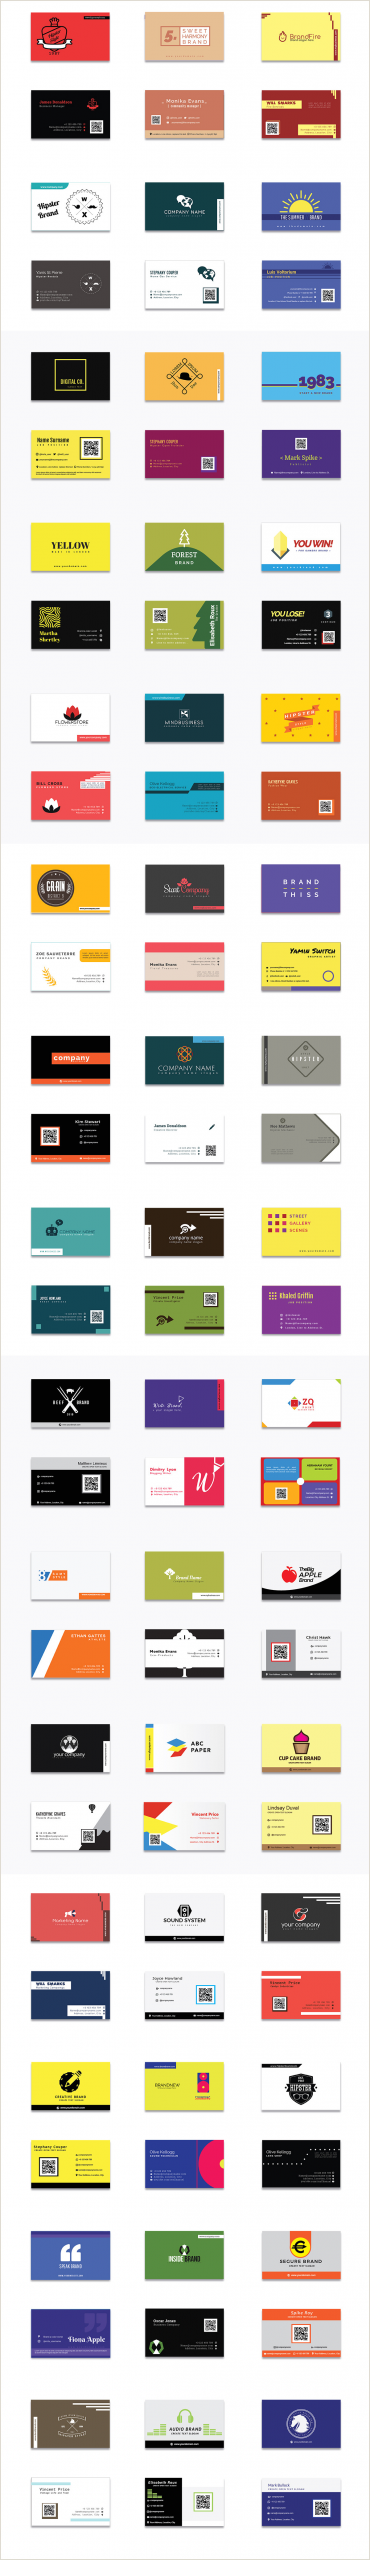 Basic Business Card Template 1000 Business Card Templates Pack Designshock Shockfamily